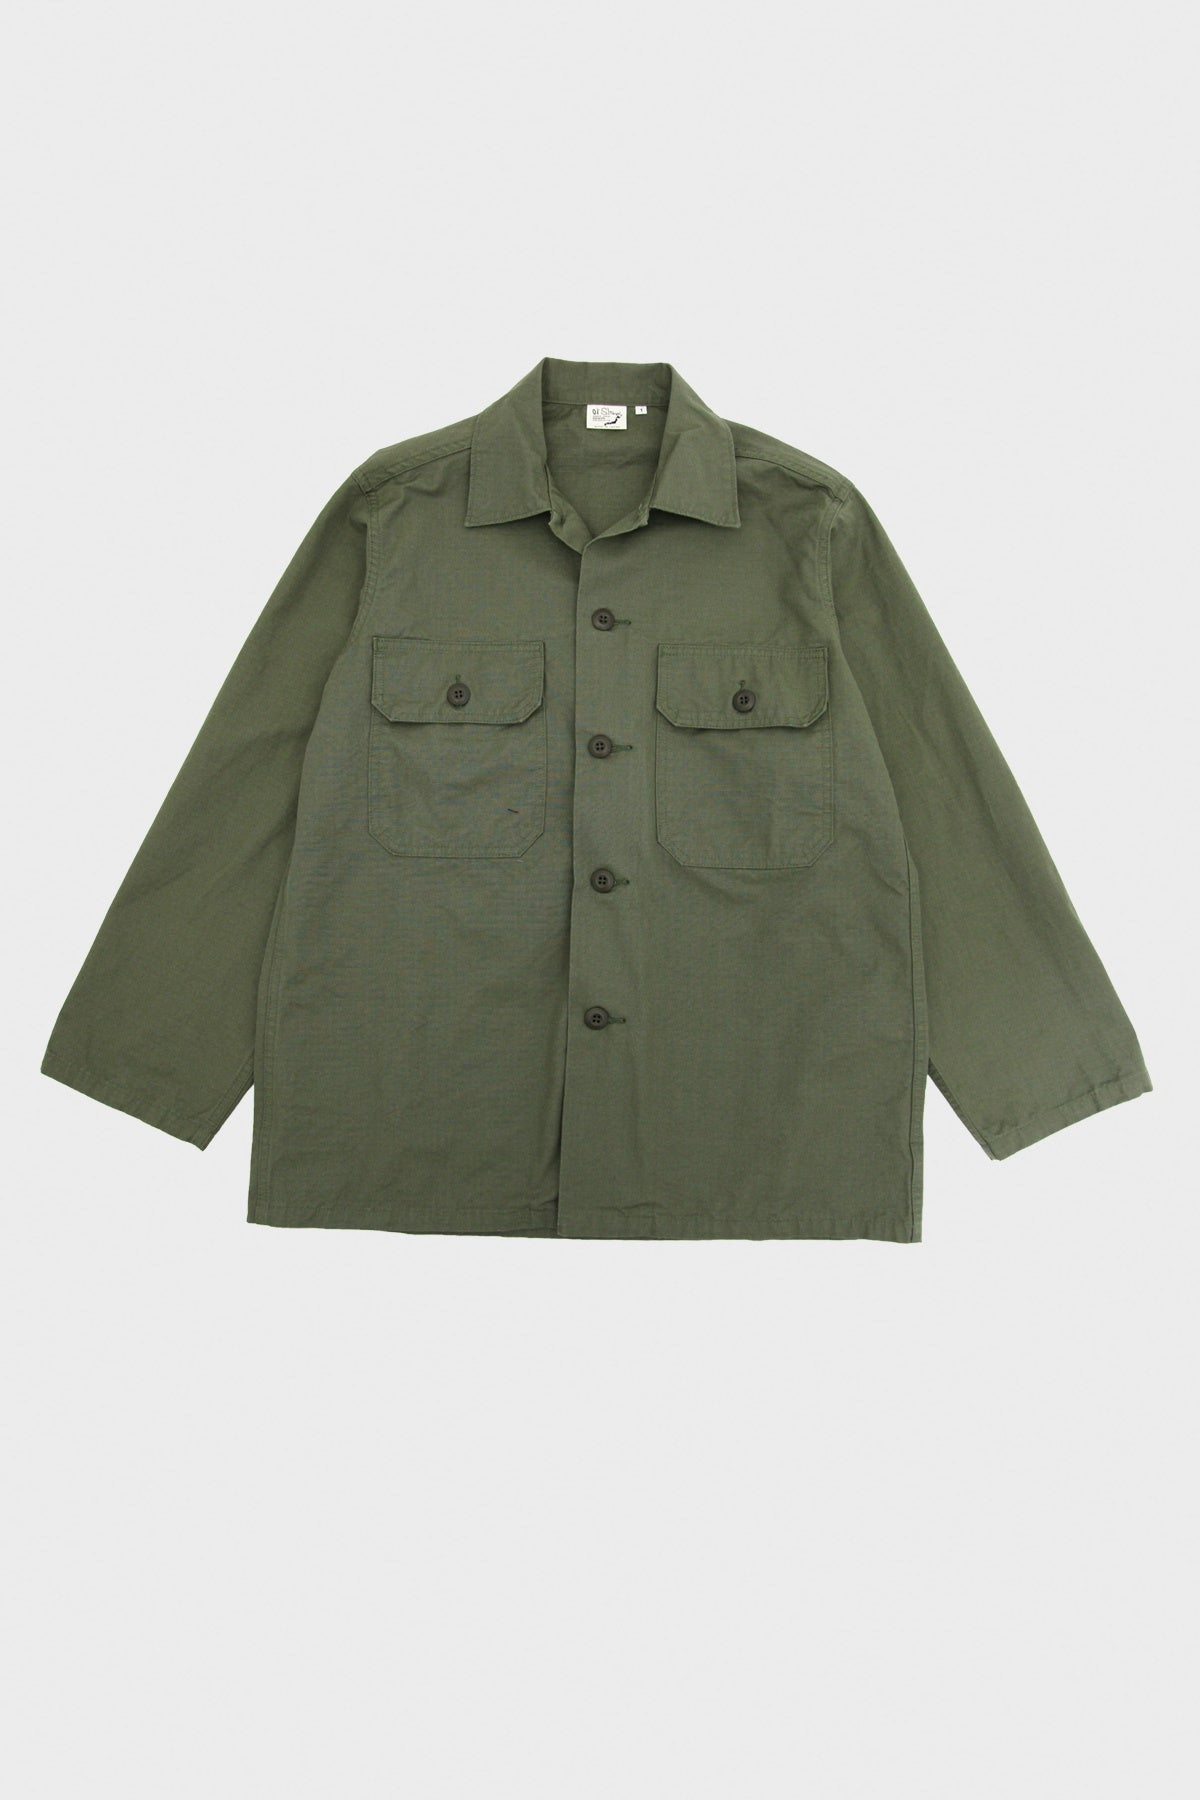 orSlow - Trooper Fatigue Shirt - Army - Canoe Club